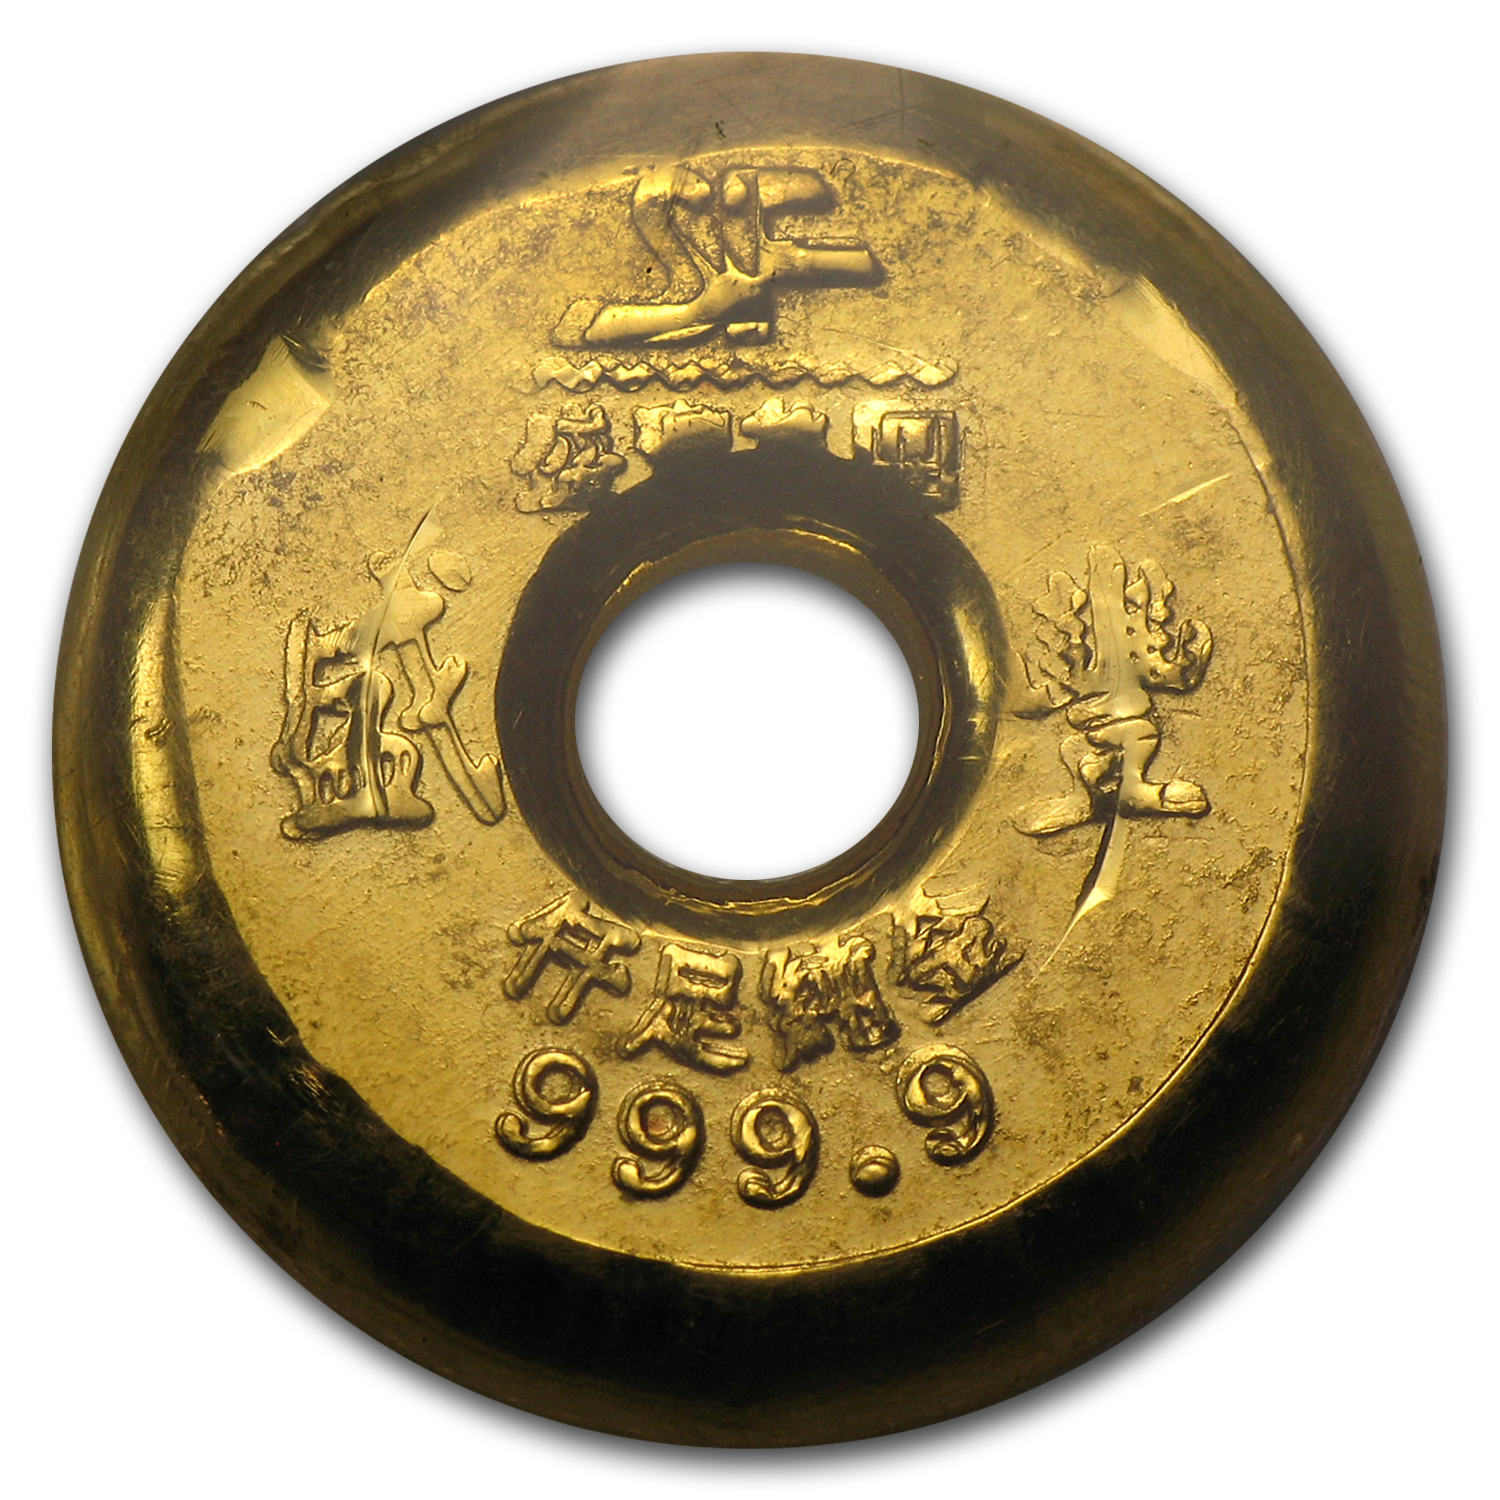 1/2 Tael Gold Rounds - Chinese Gold Button (.6029 oz)